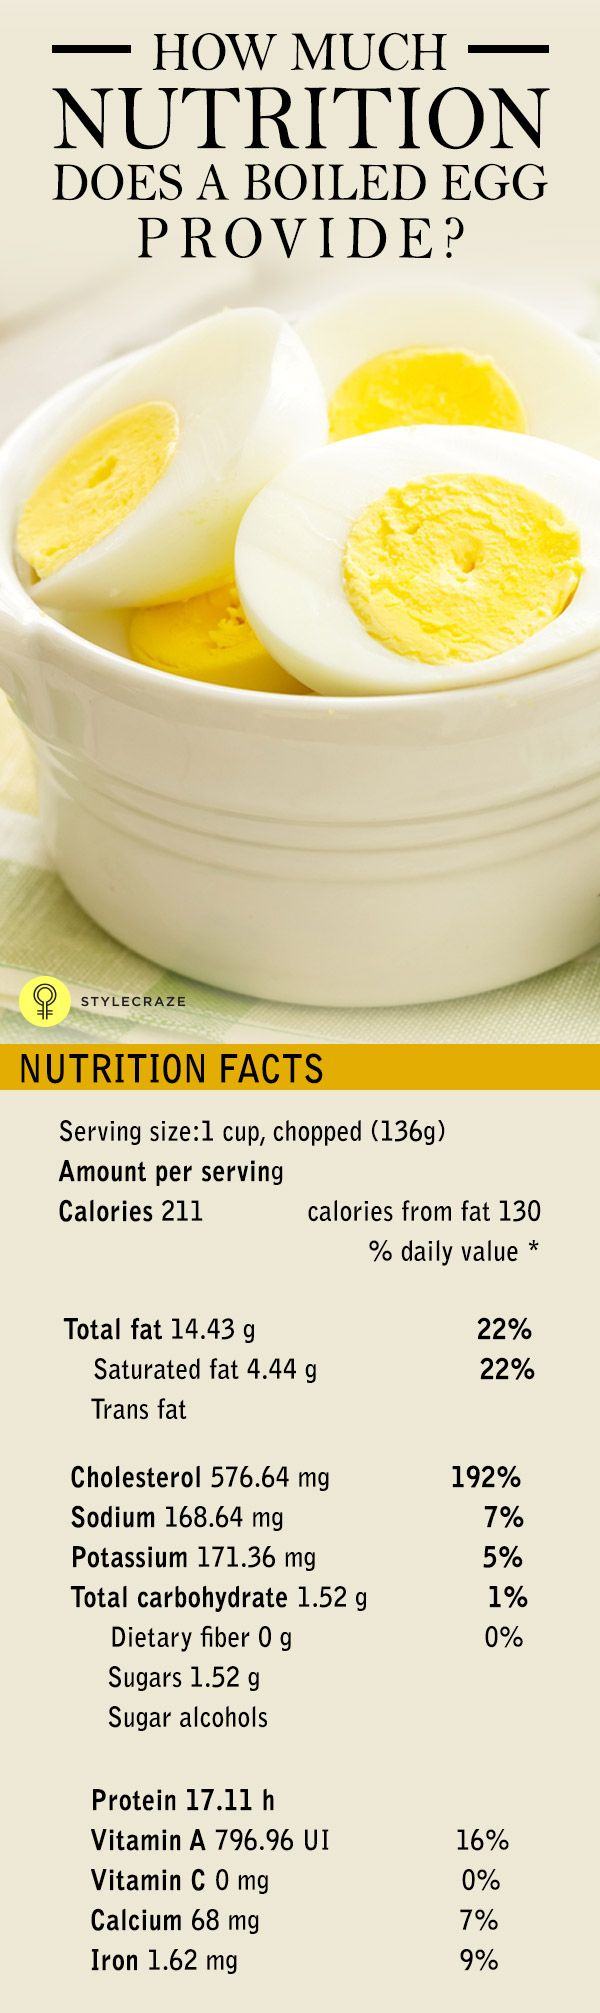 How Much Nutrition Does A Boiled Egg Provide? Boiled eggs – the wholesome boiled eggs – are comfort food for many. Most moms and wives ...